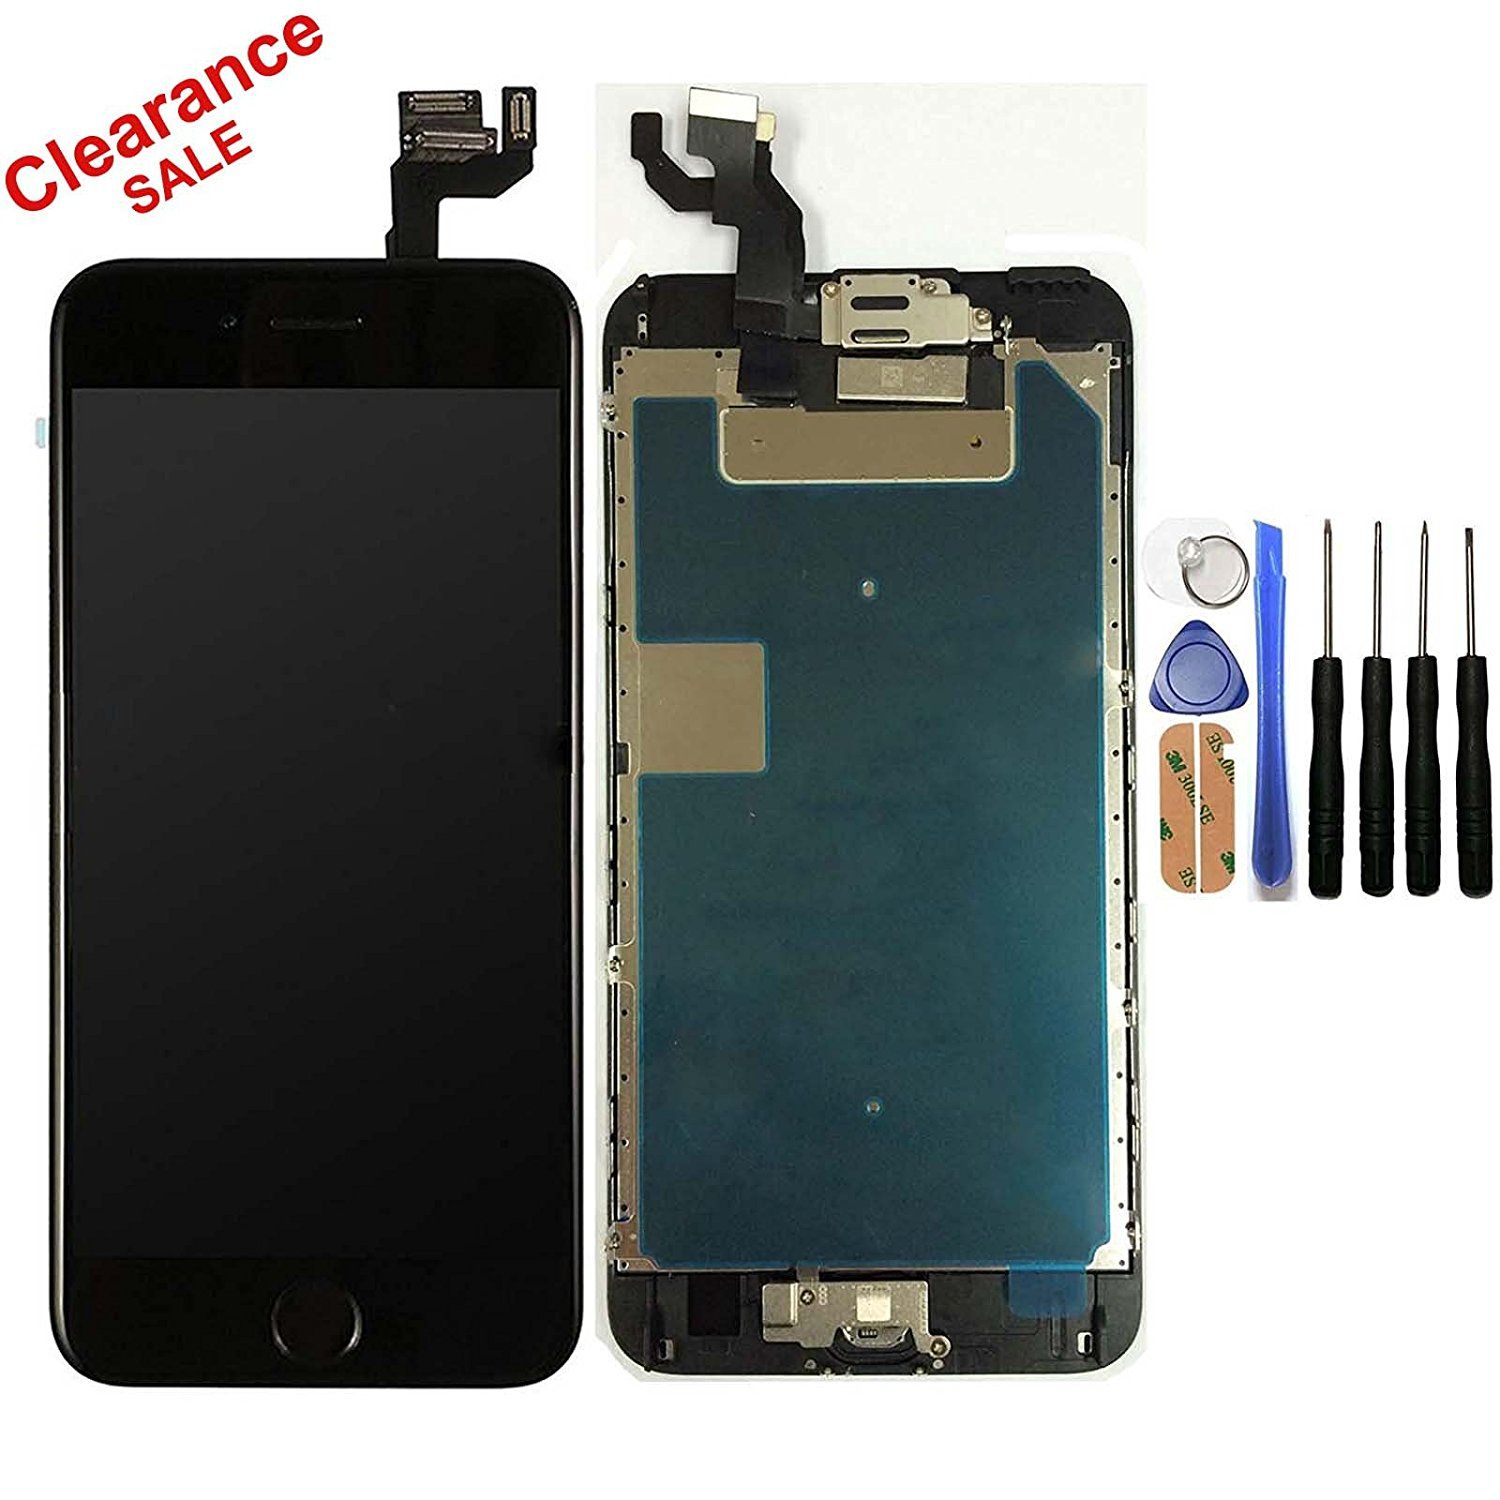 Cellphoneage For IPhone 6S Plus 5.5 Inch New LCD Touch